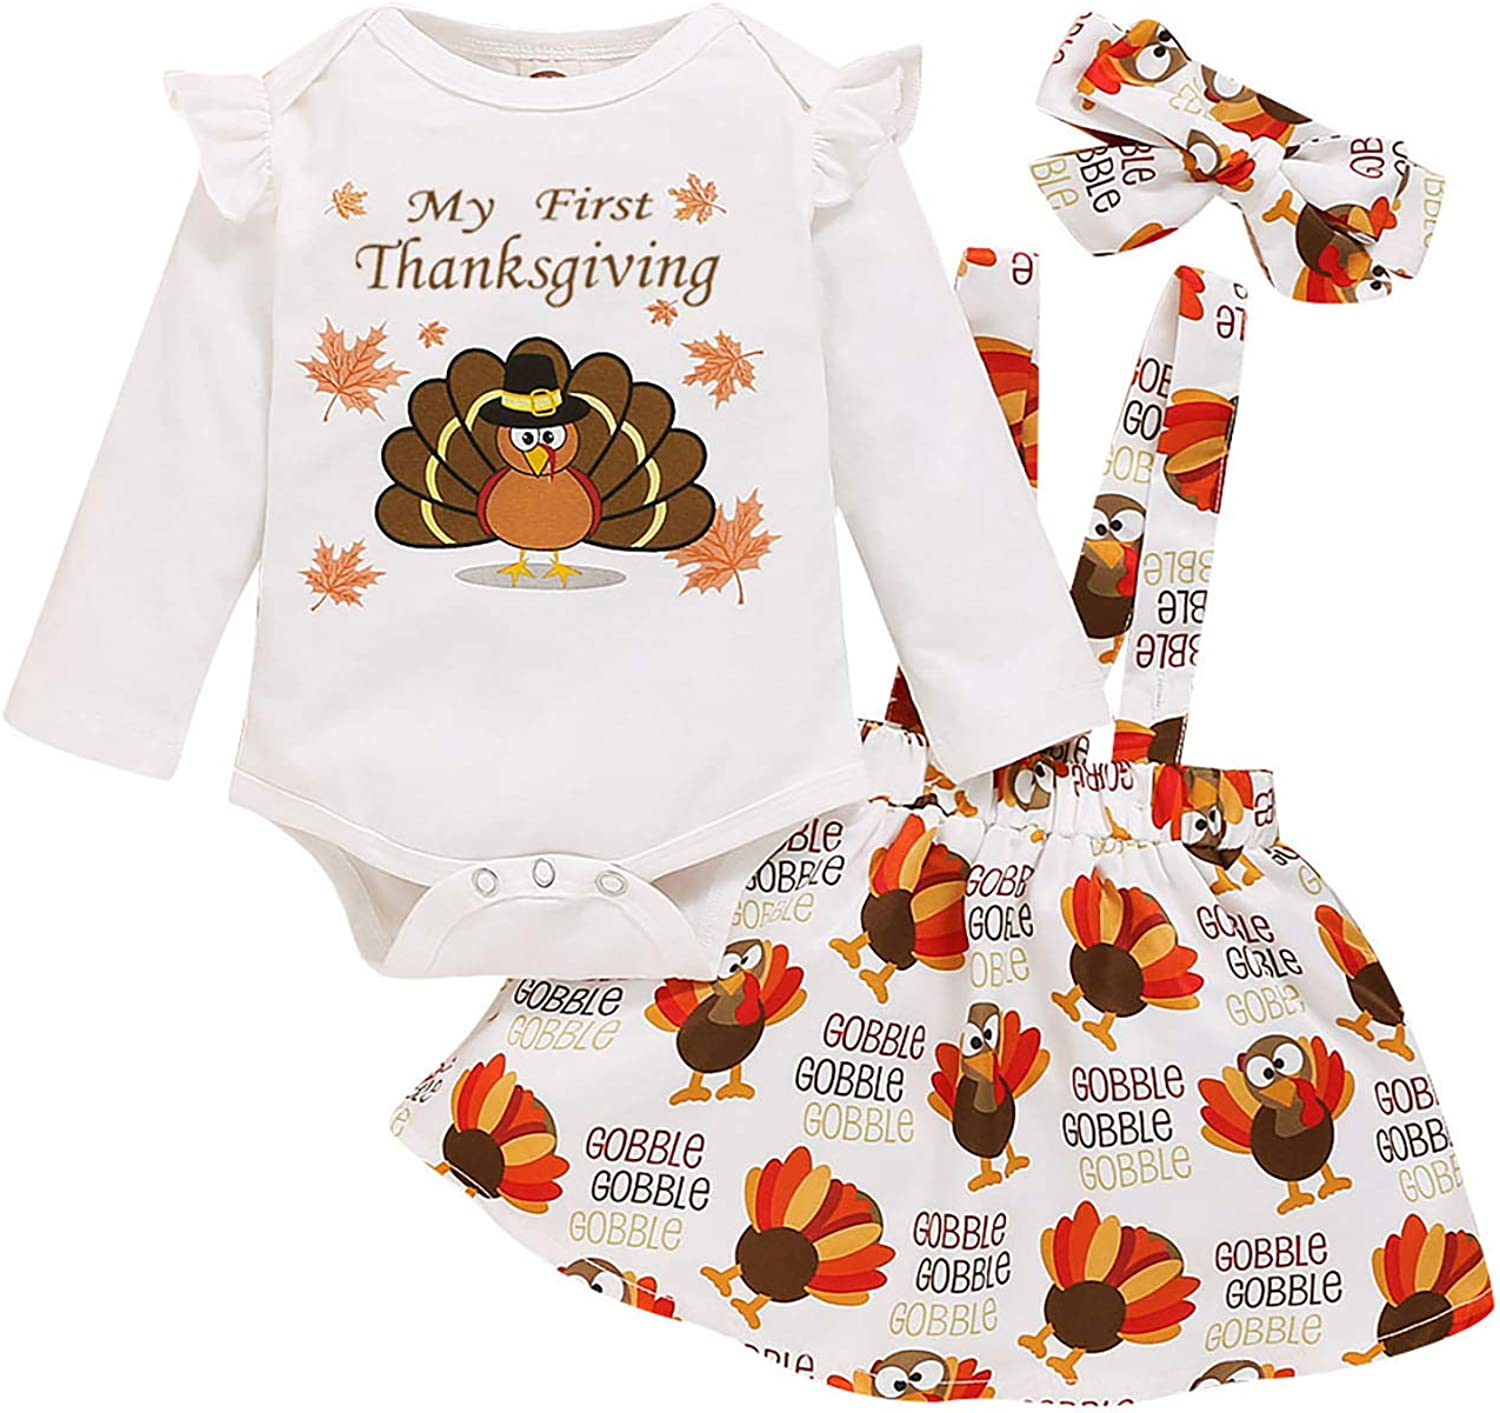 Infant Baby Girl Thanksgiving Outfit My First Thanksgiving Romper Turkey Suspender Skirt with Headband Clothes Sets